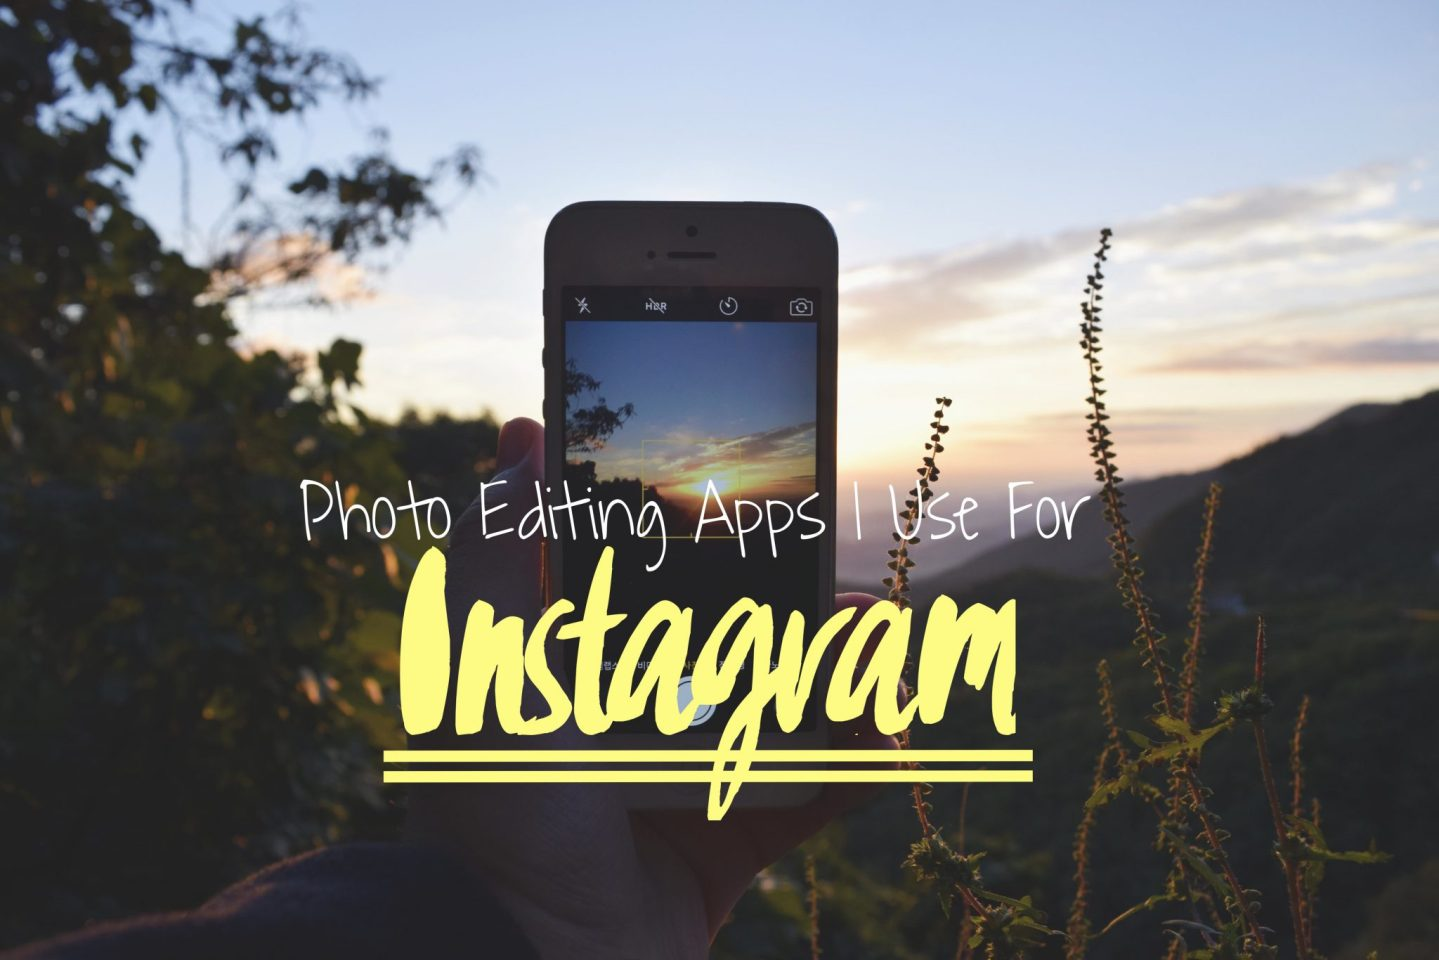 Photo Editing Apps I Use For Instagram